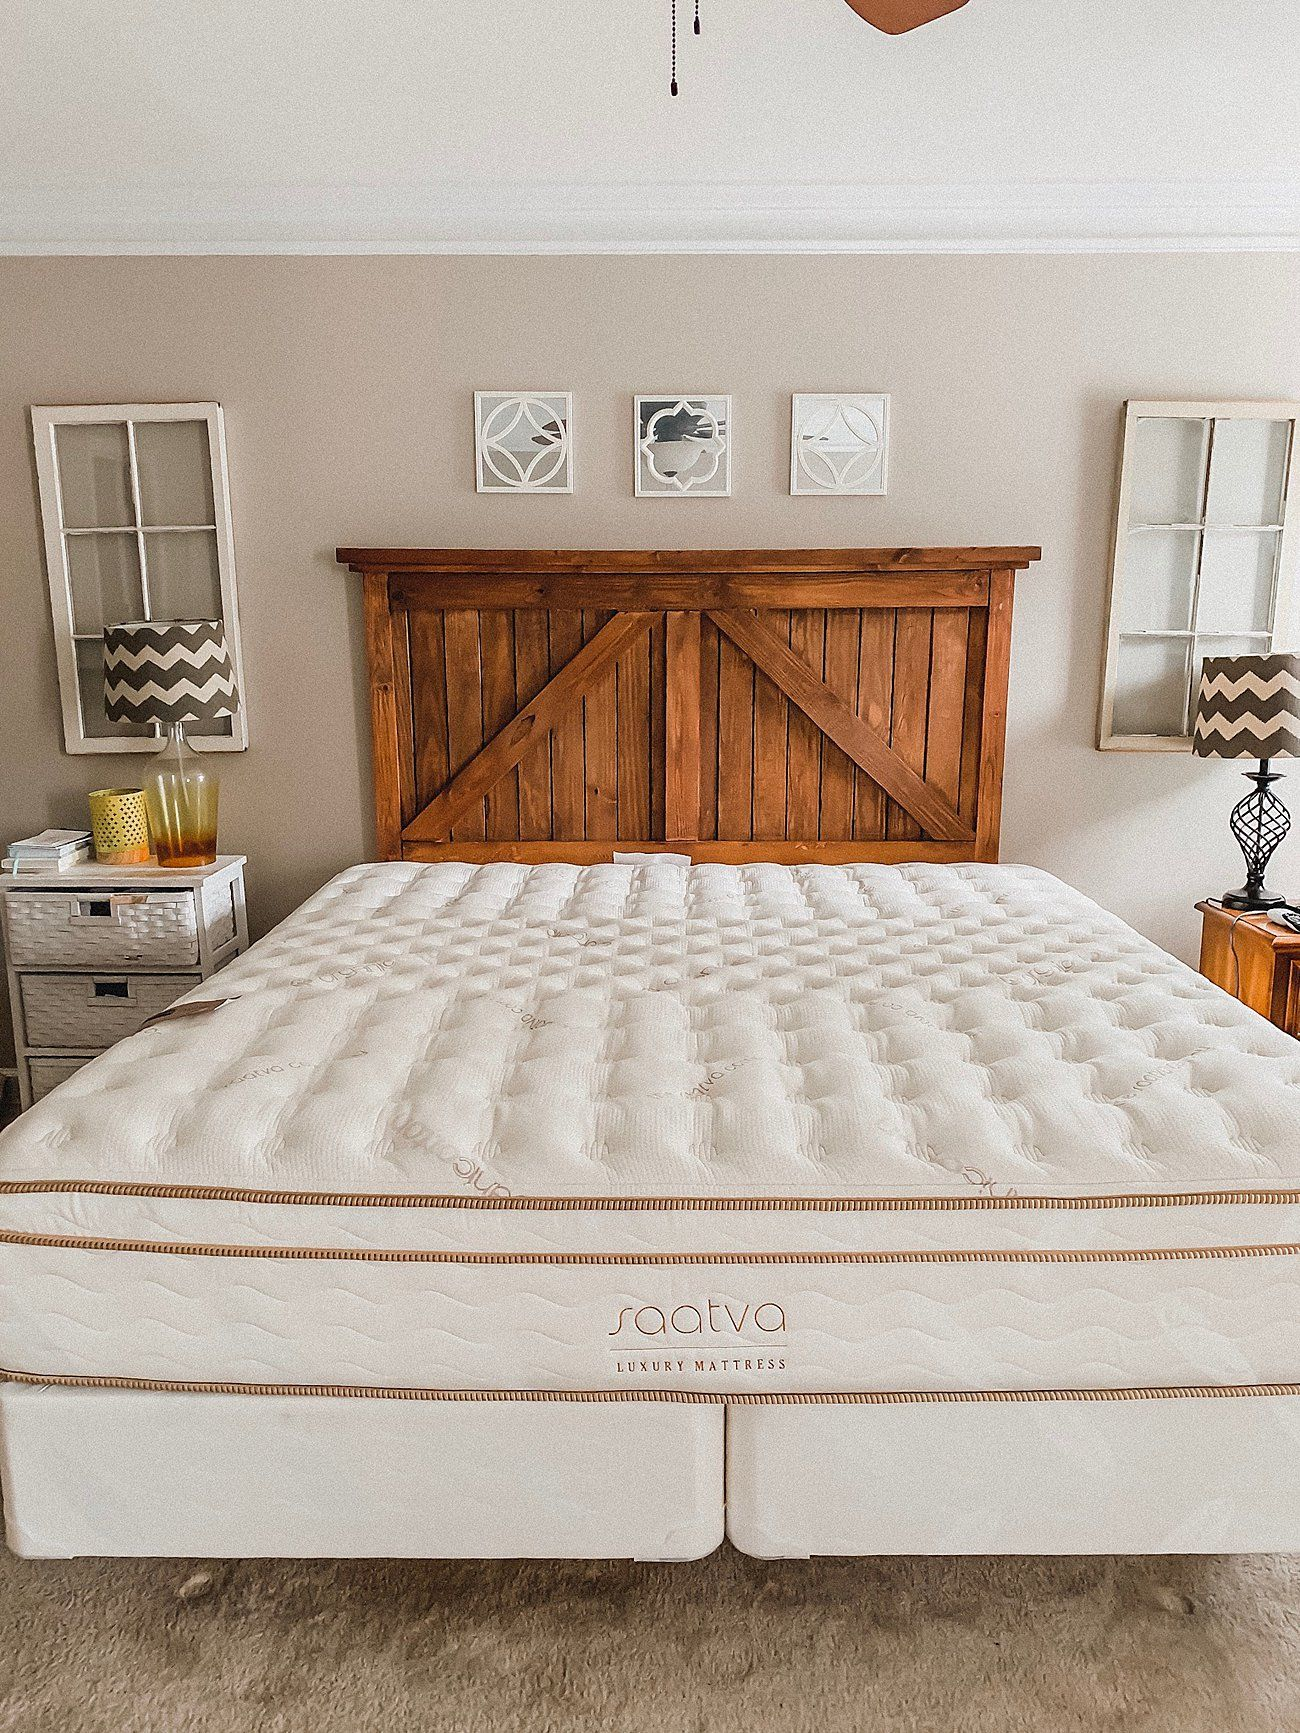 WE FINALLY GOT A KING BED!! SAATVA Mattress Review King